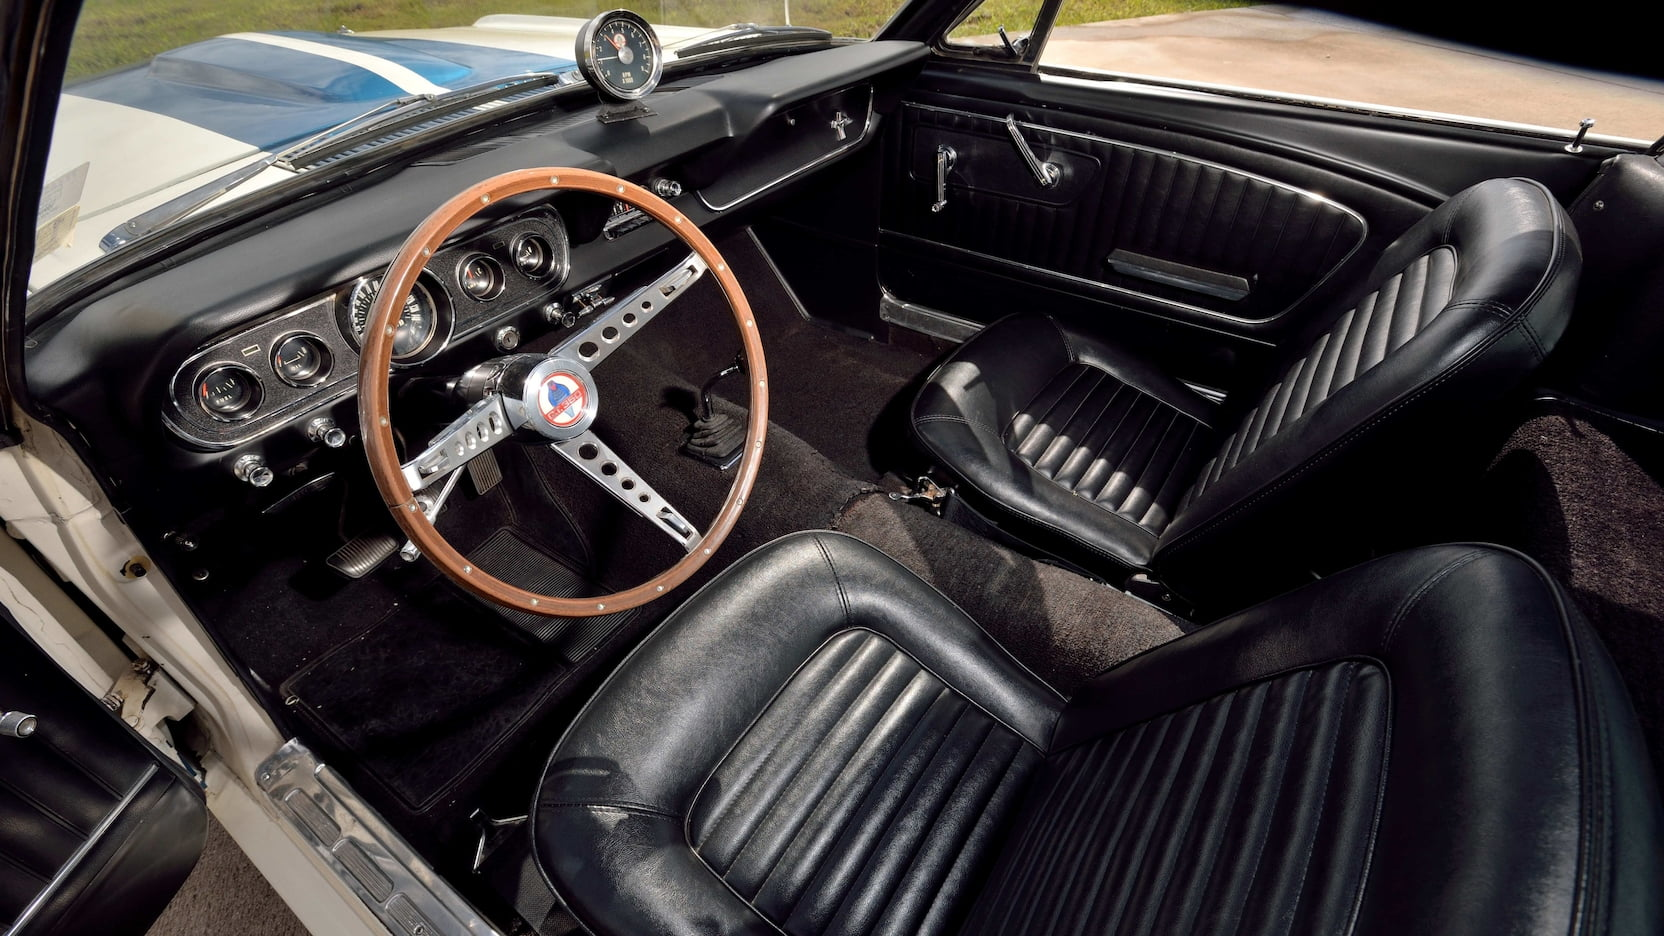 1966 Shelby GT350 interior driver